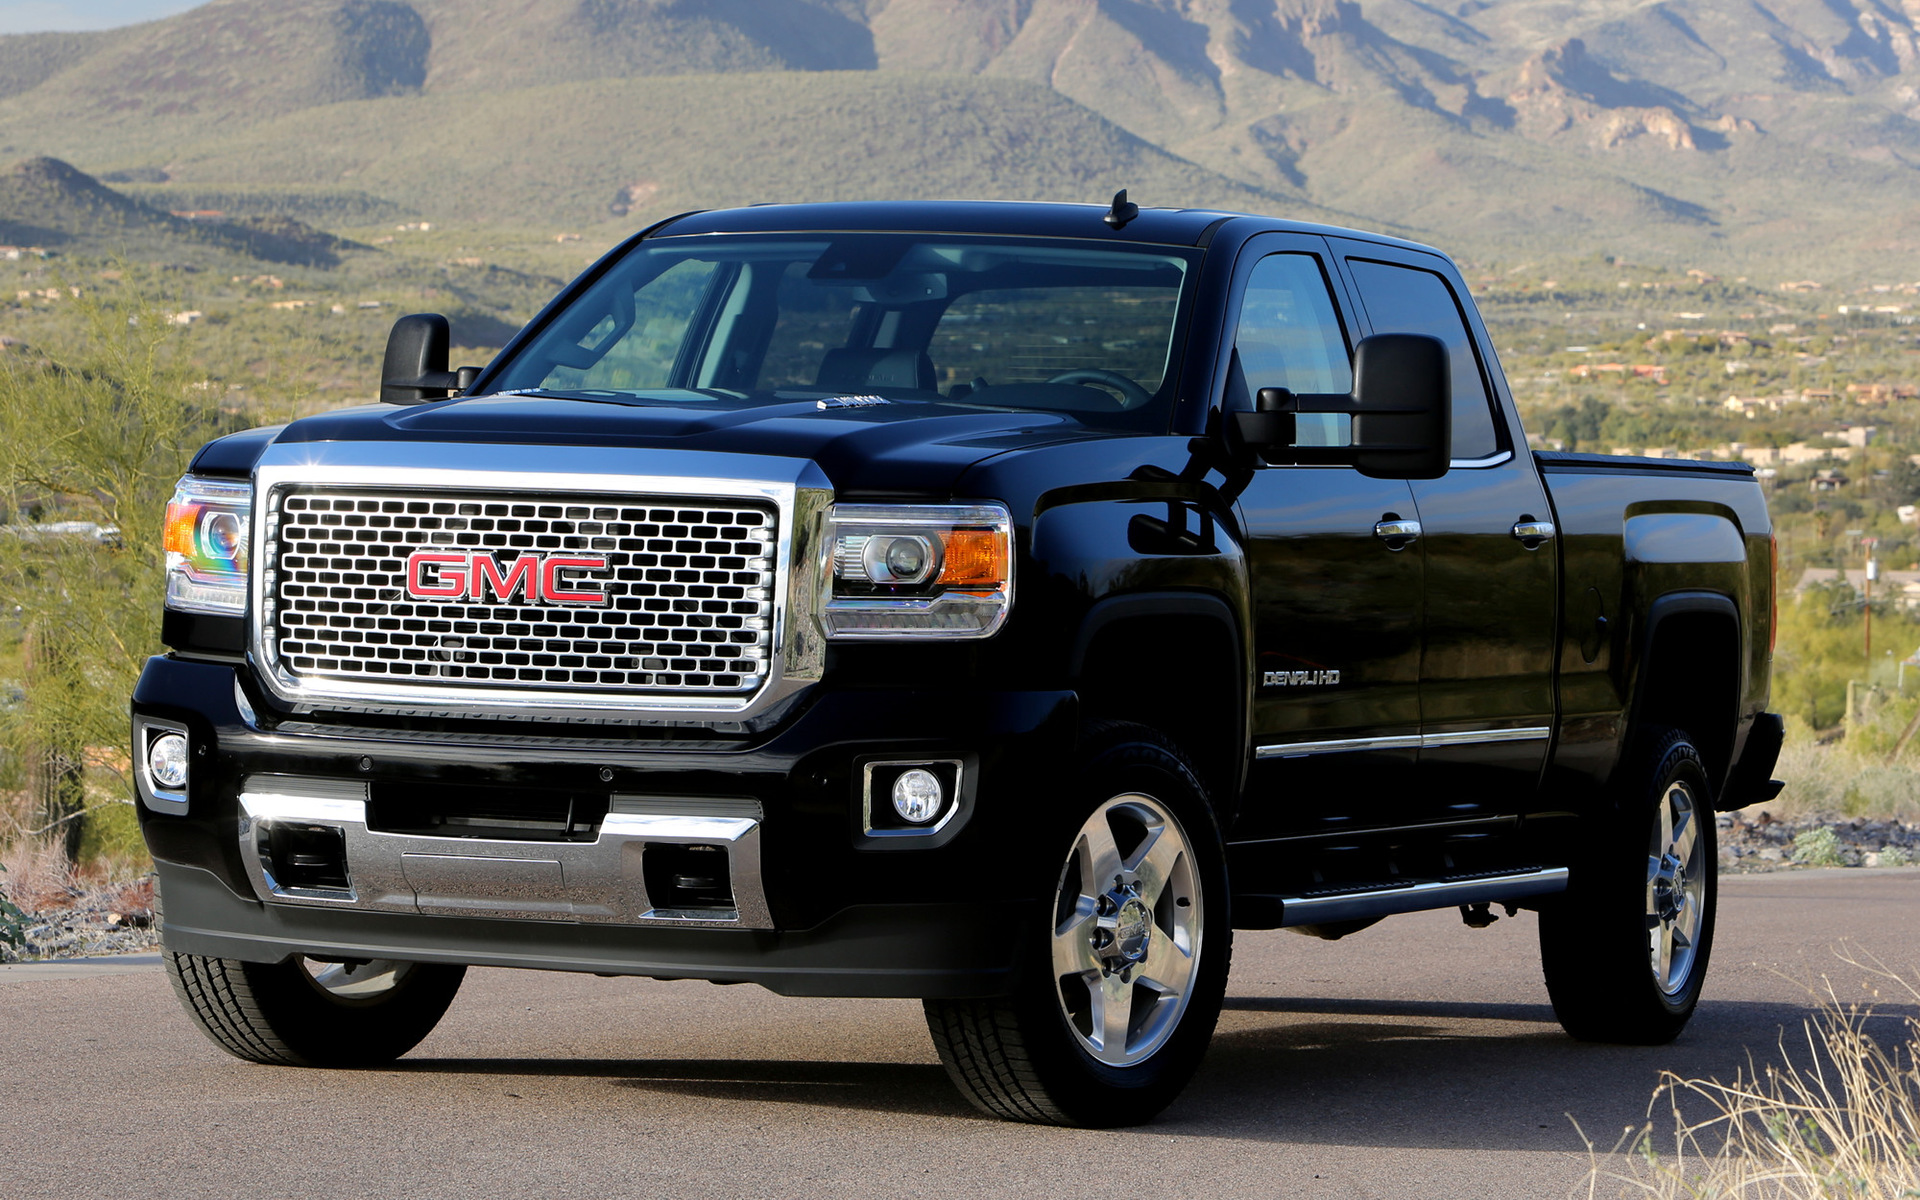 us en pressroom states denali gmc united hd vehicles media sierra